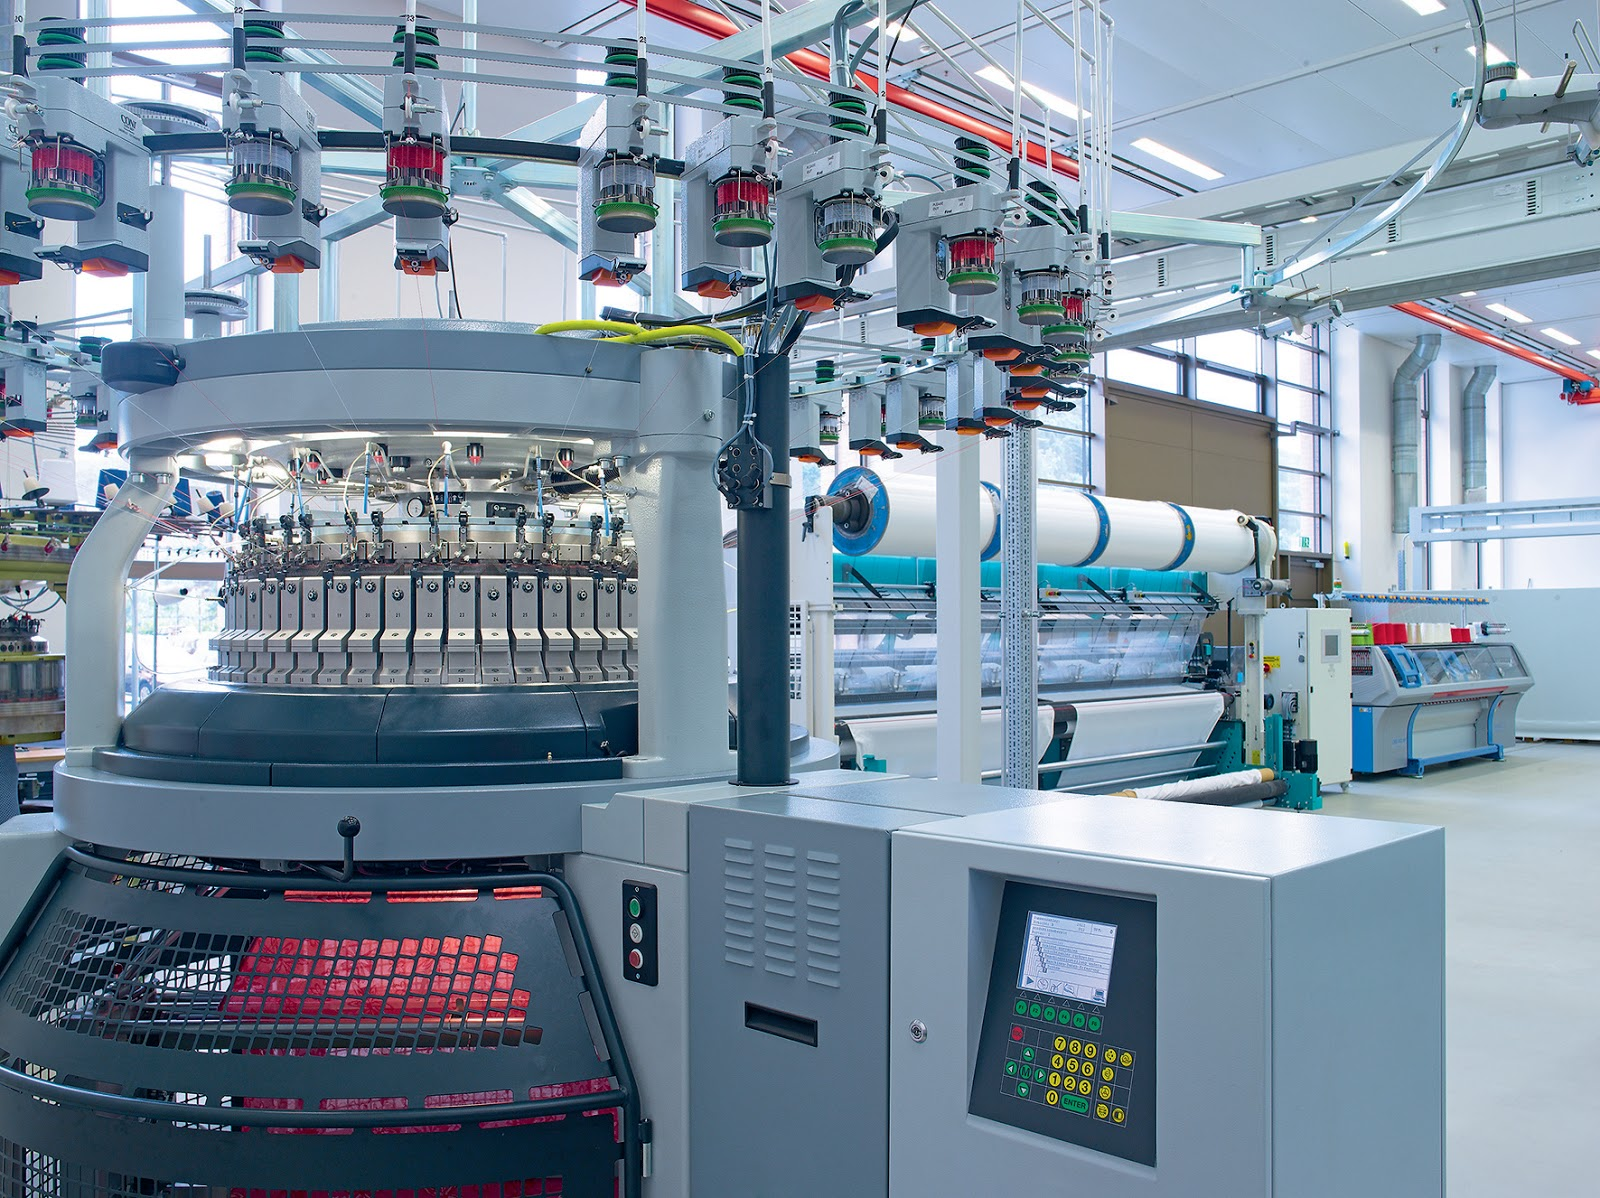 The major developments in the field of textile printing